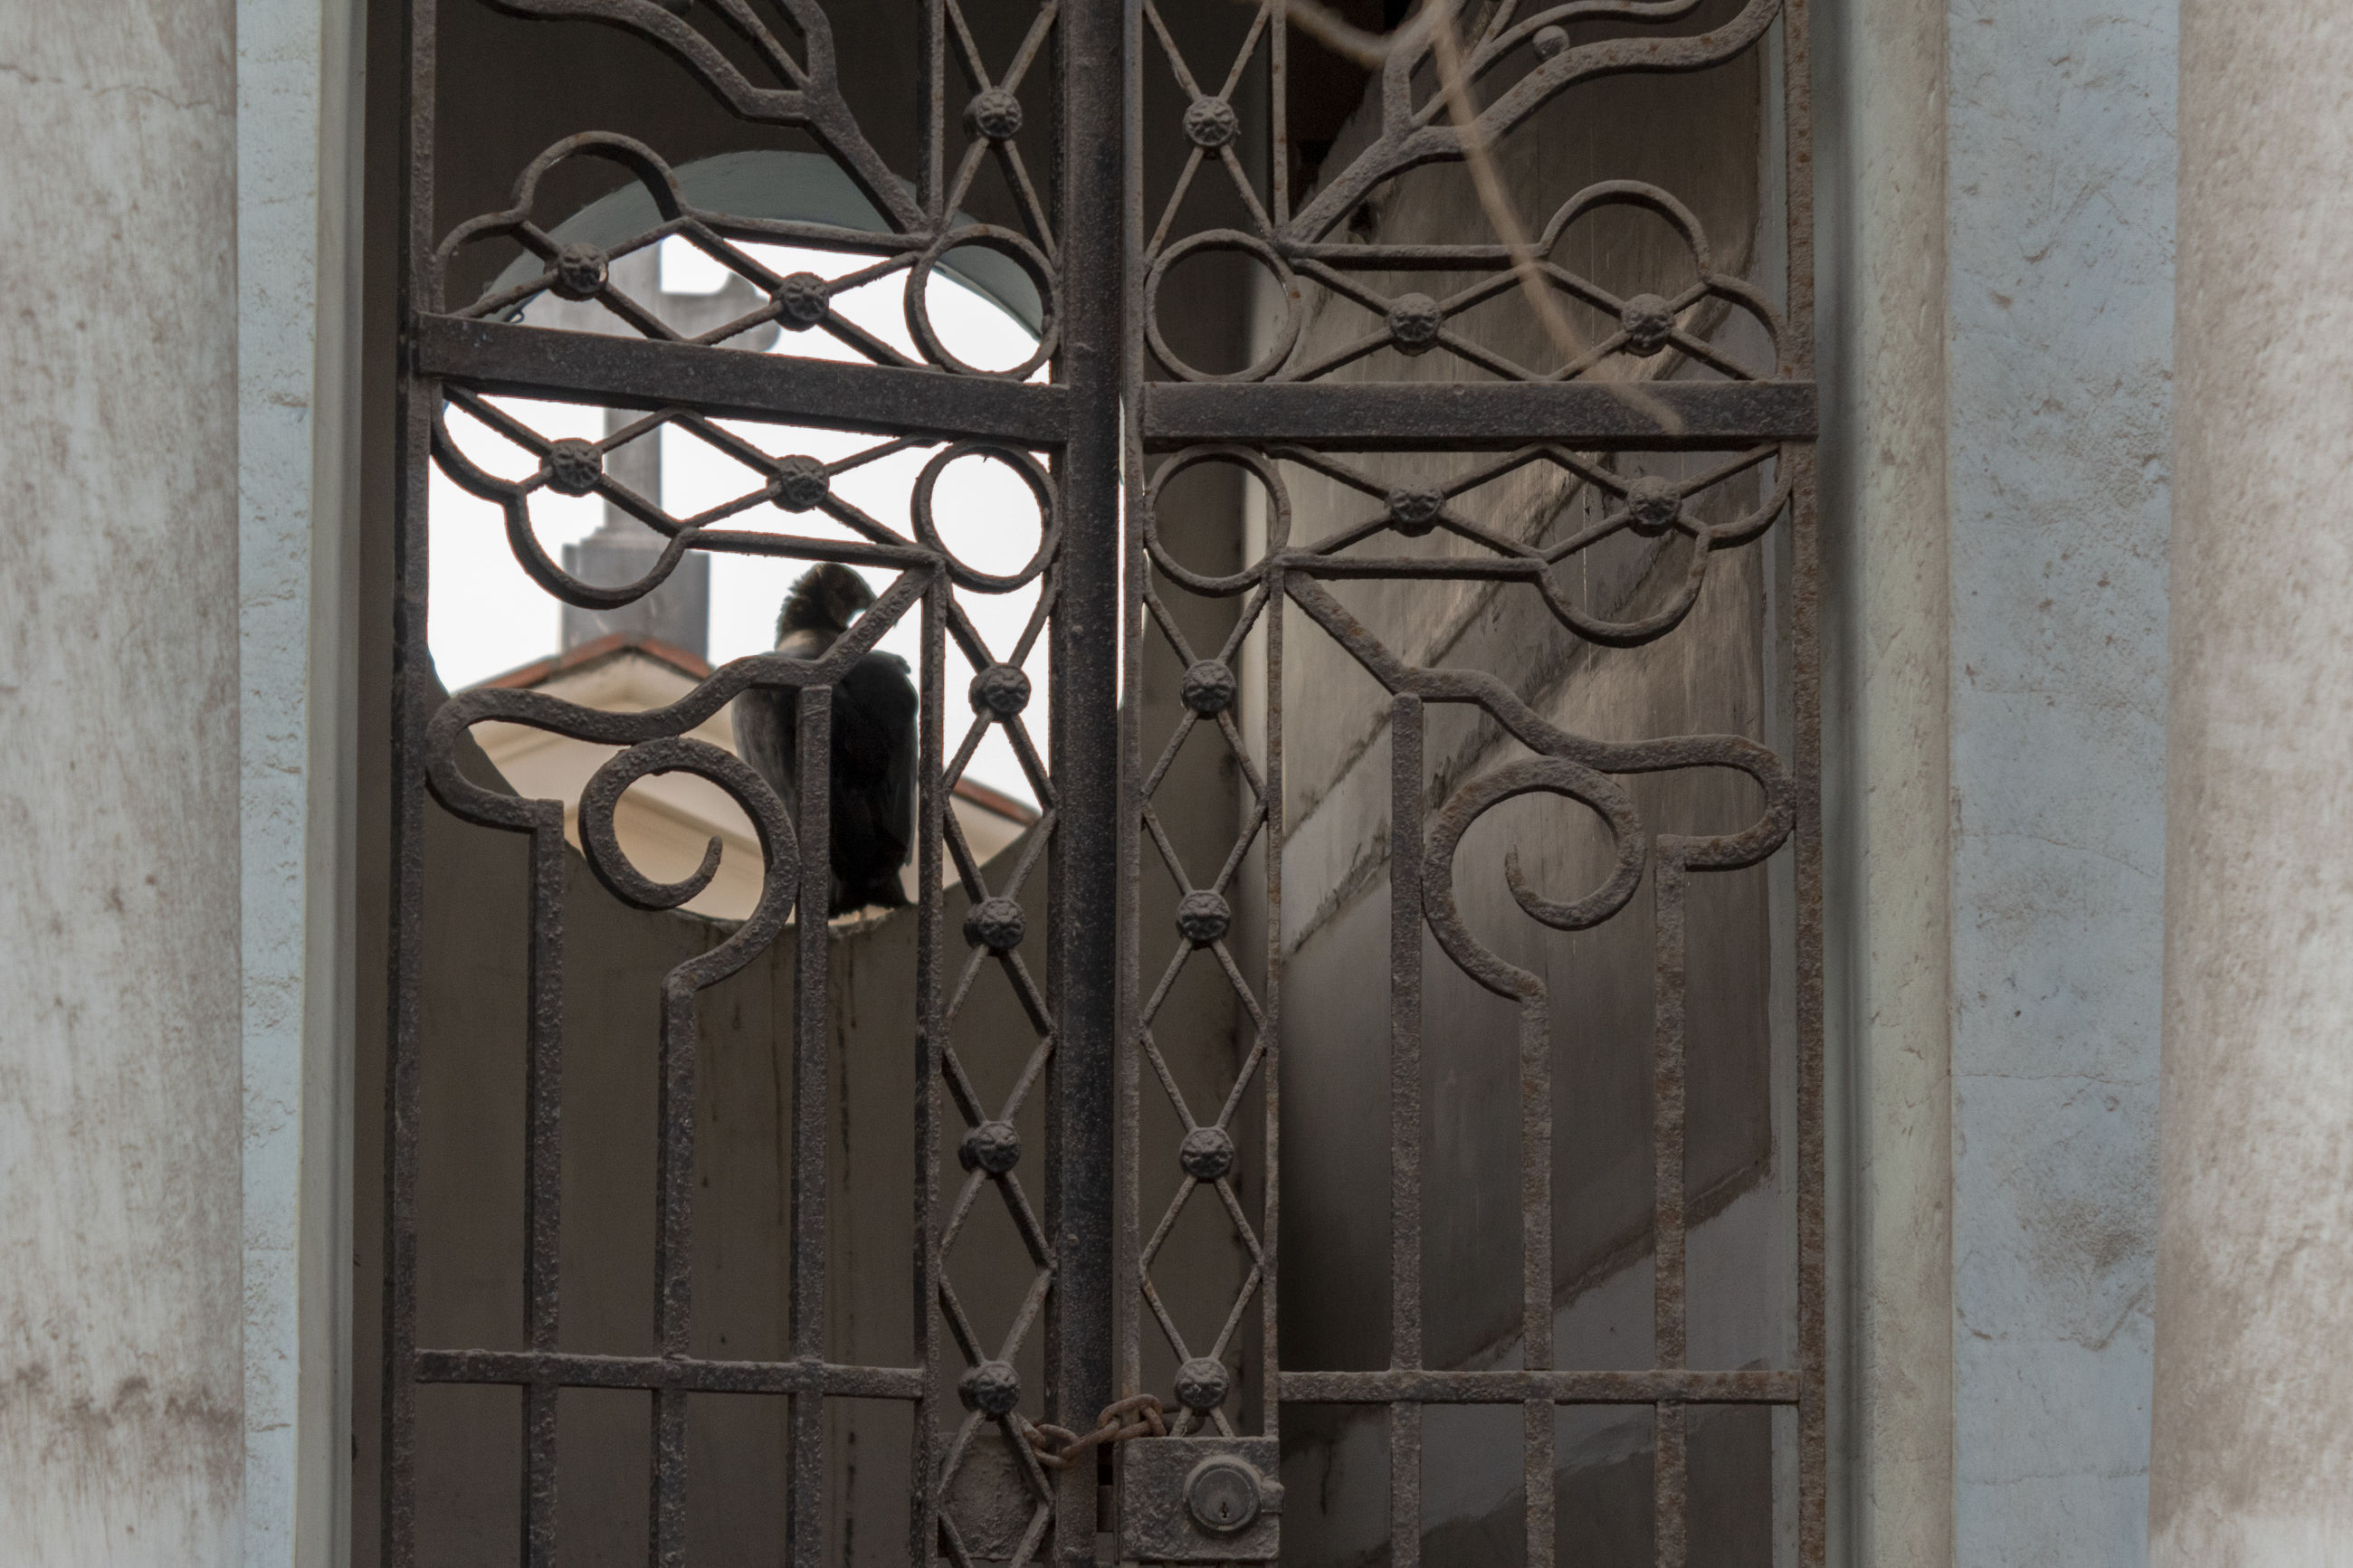 metal, no people, architecture, window, day, indoors, entrance, security, safety, door, built structure, protection, building, wall - building feature, grate, grid, old, gate, pattern, metal grate, iron - metal, wrought iron